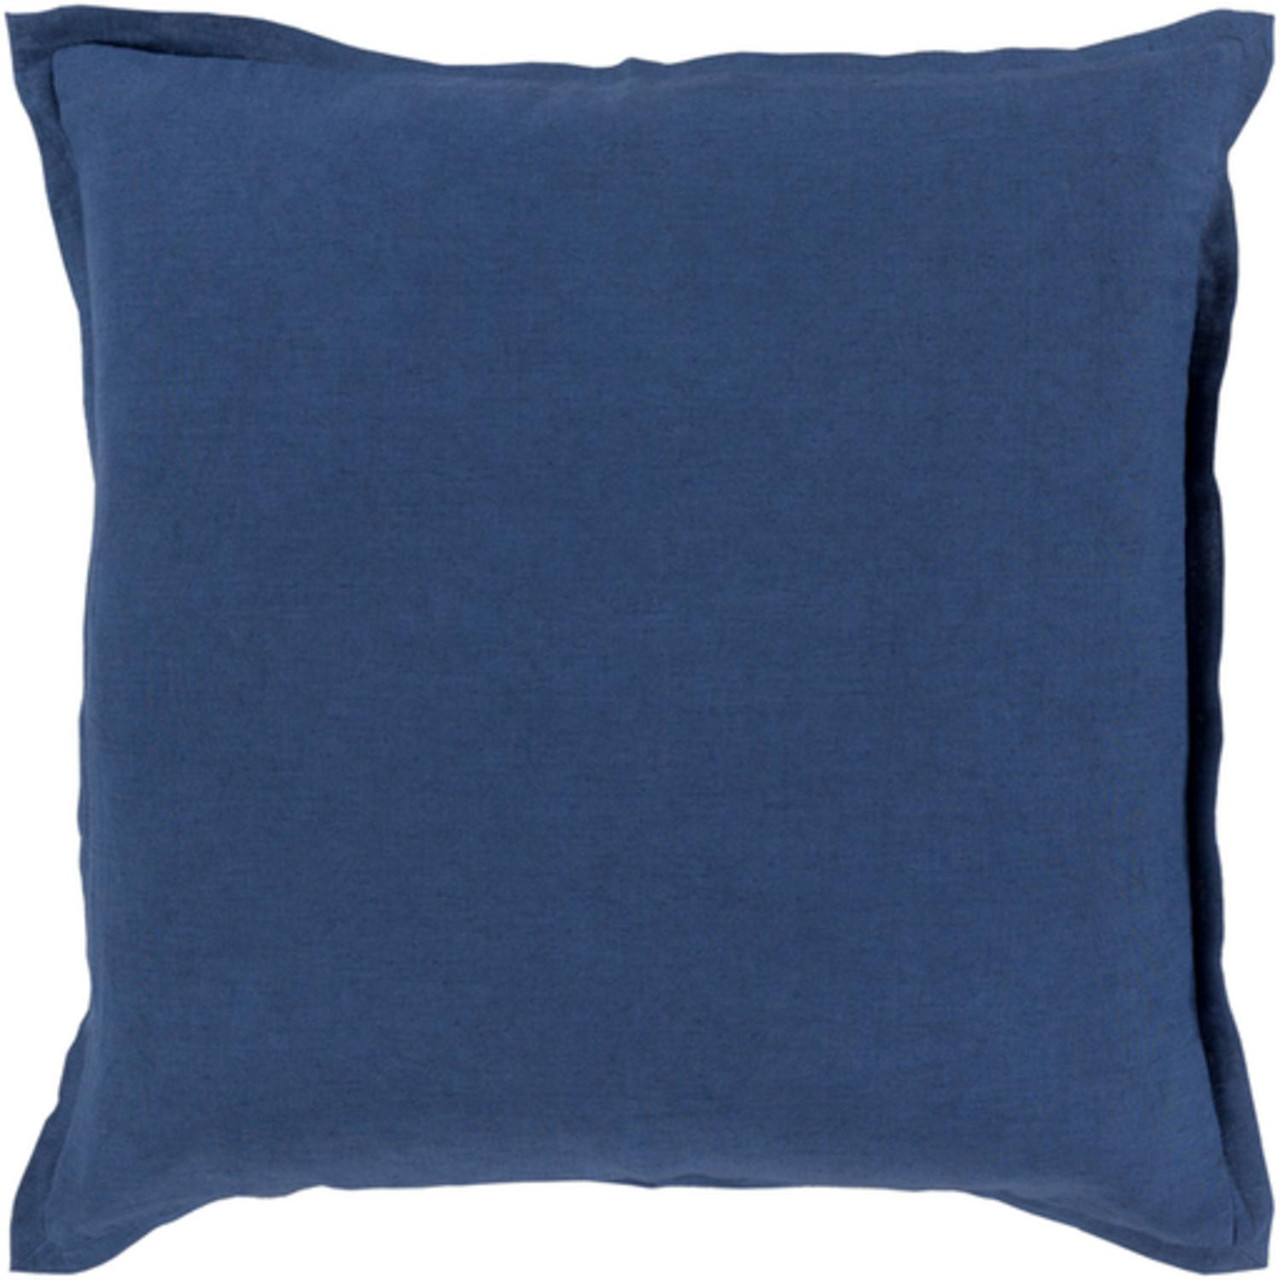 18 royal blue solid decorative throw pillow christmas for Royal blue couch pillows